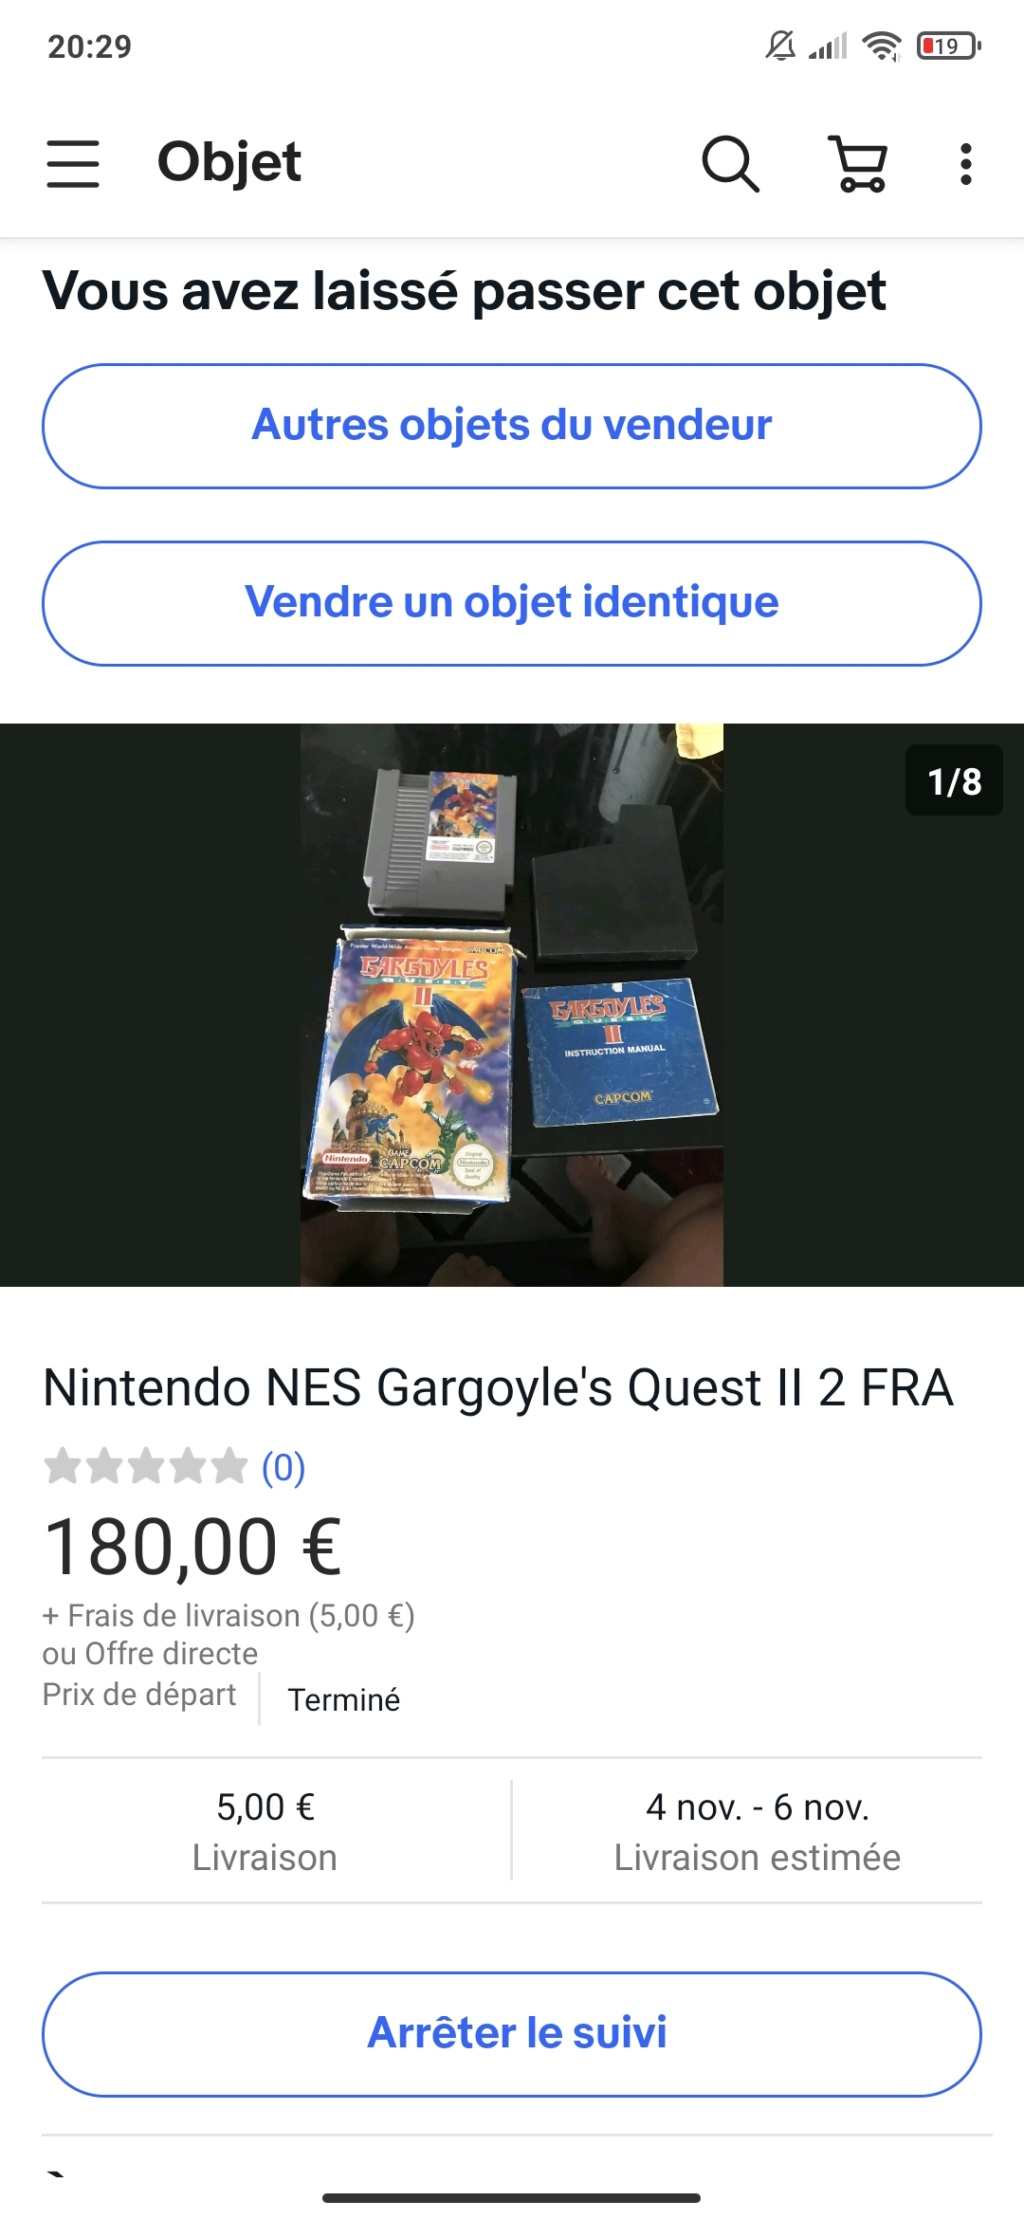 [rech] jeux N64 + gargole's quest 2 nes Screen10